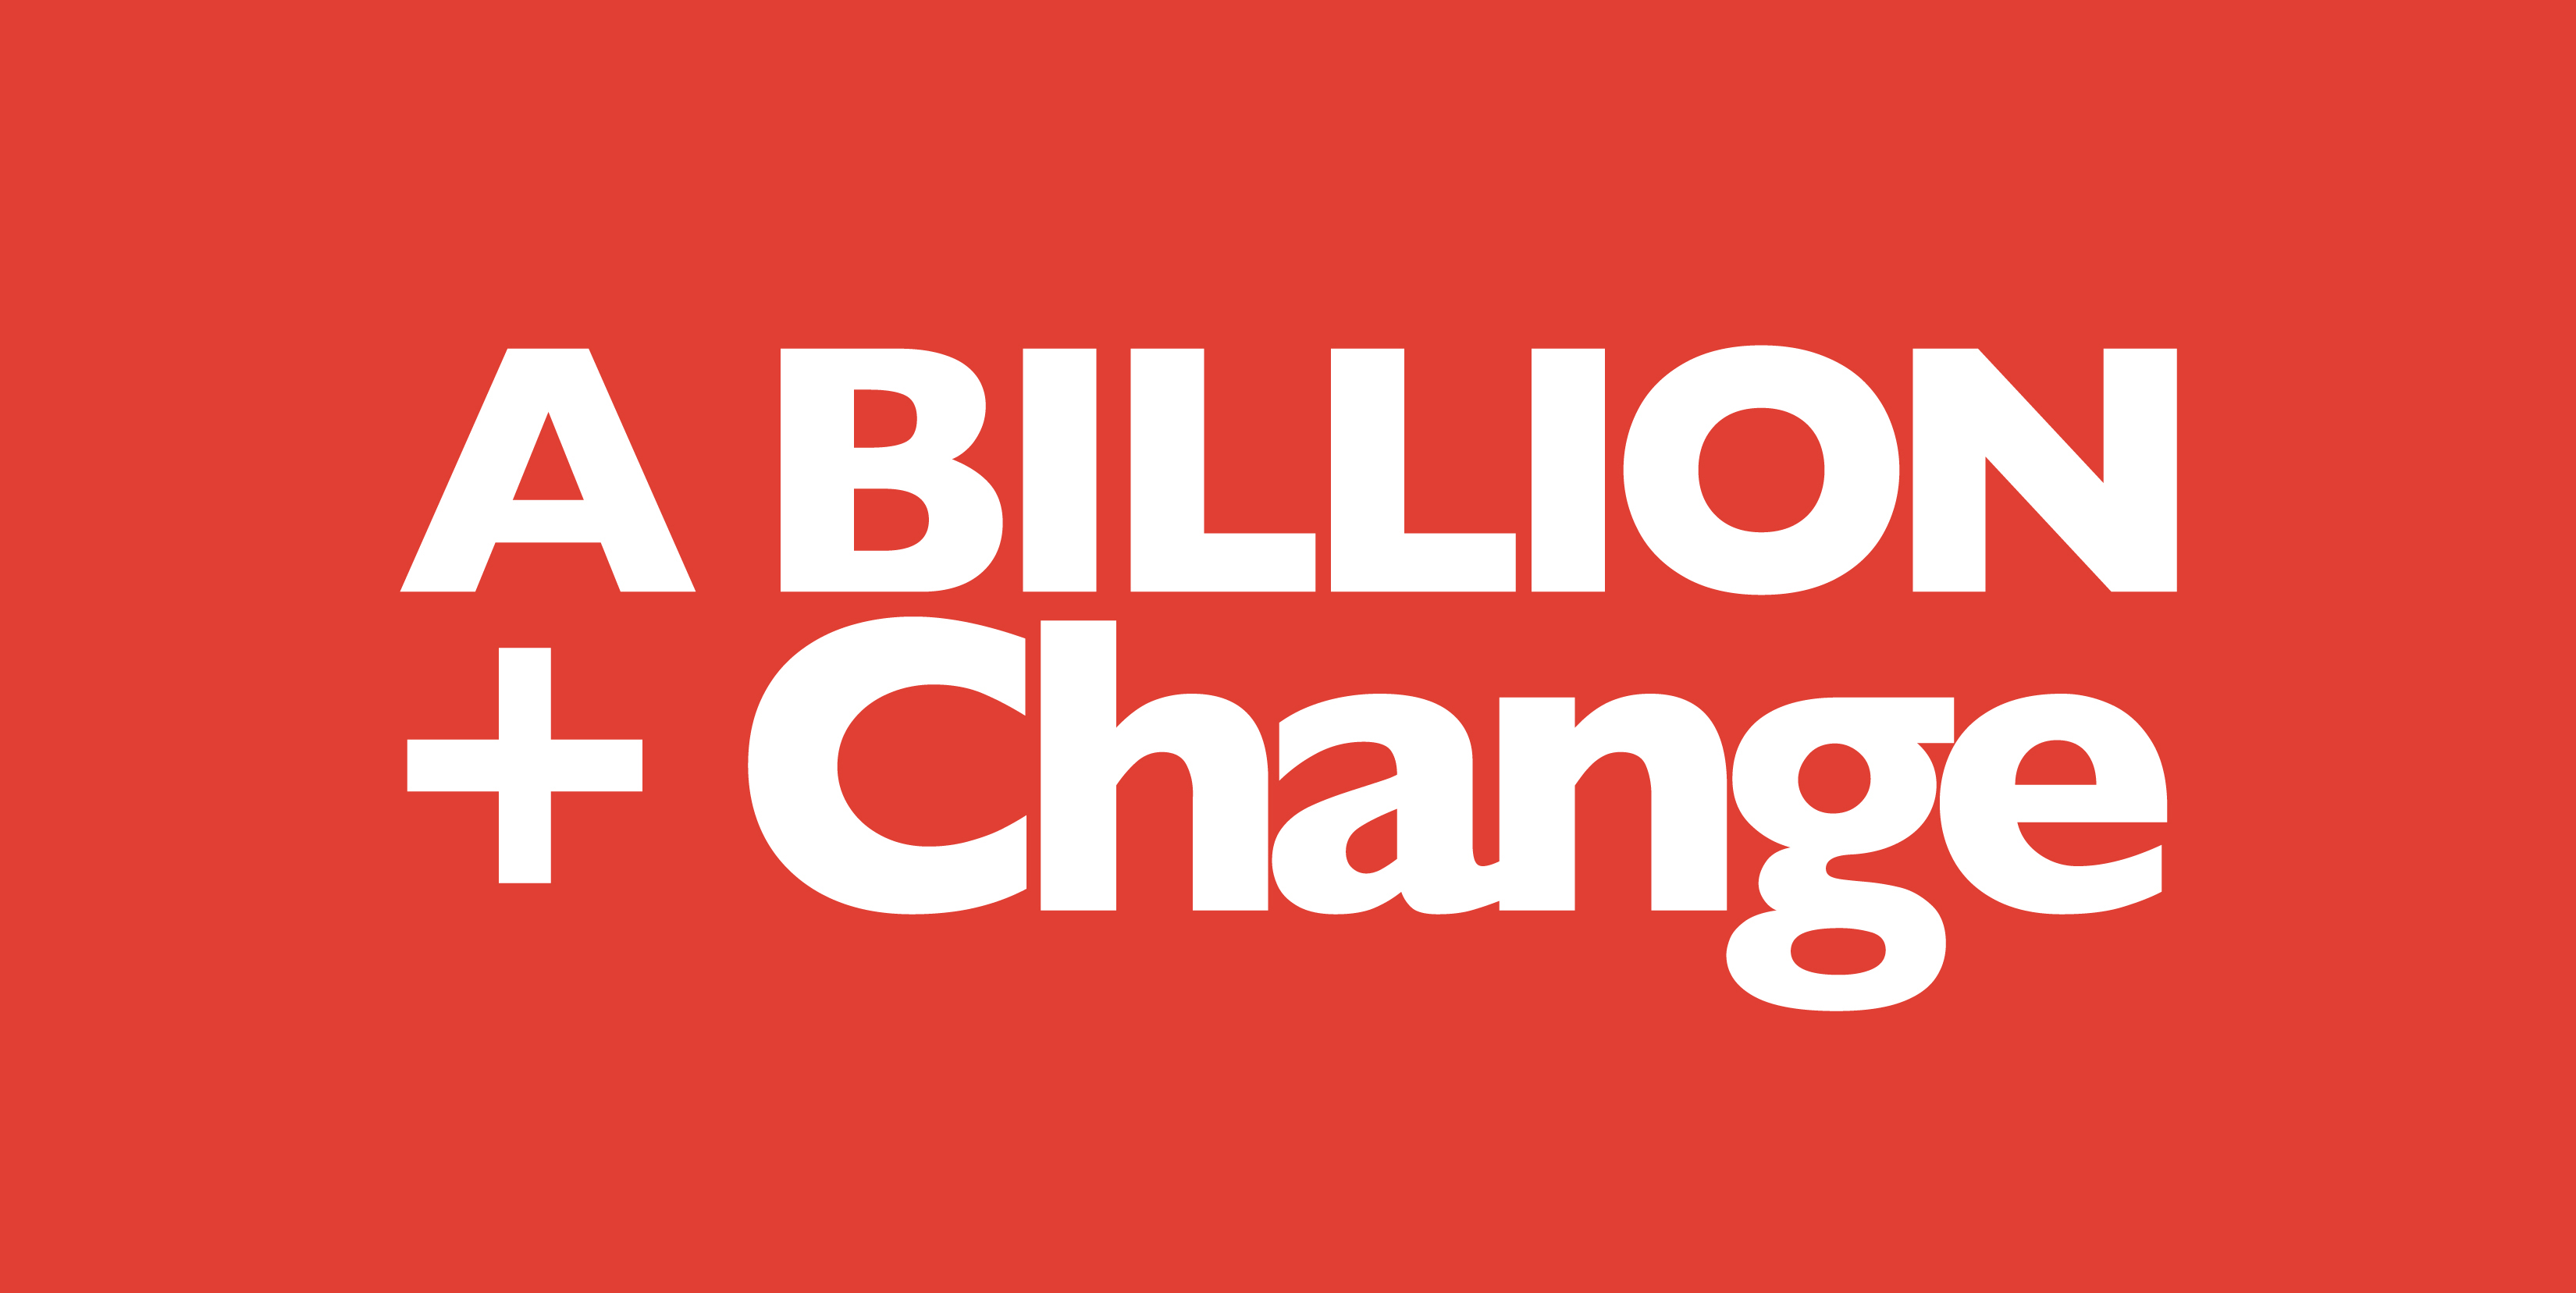 A Billion + Change